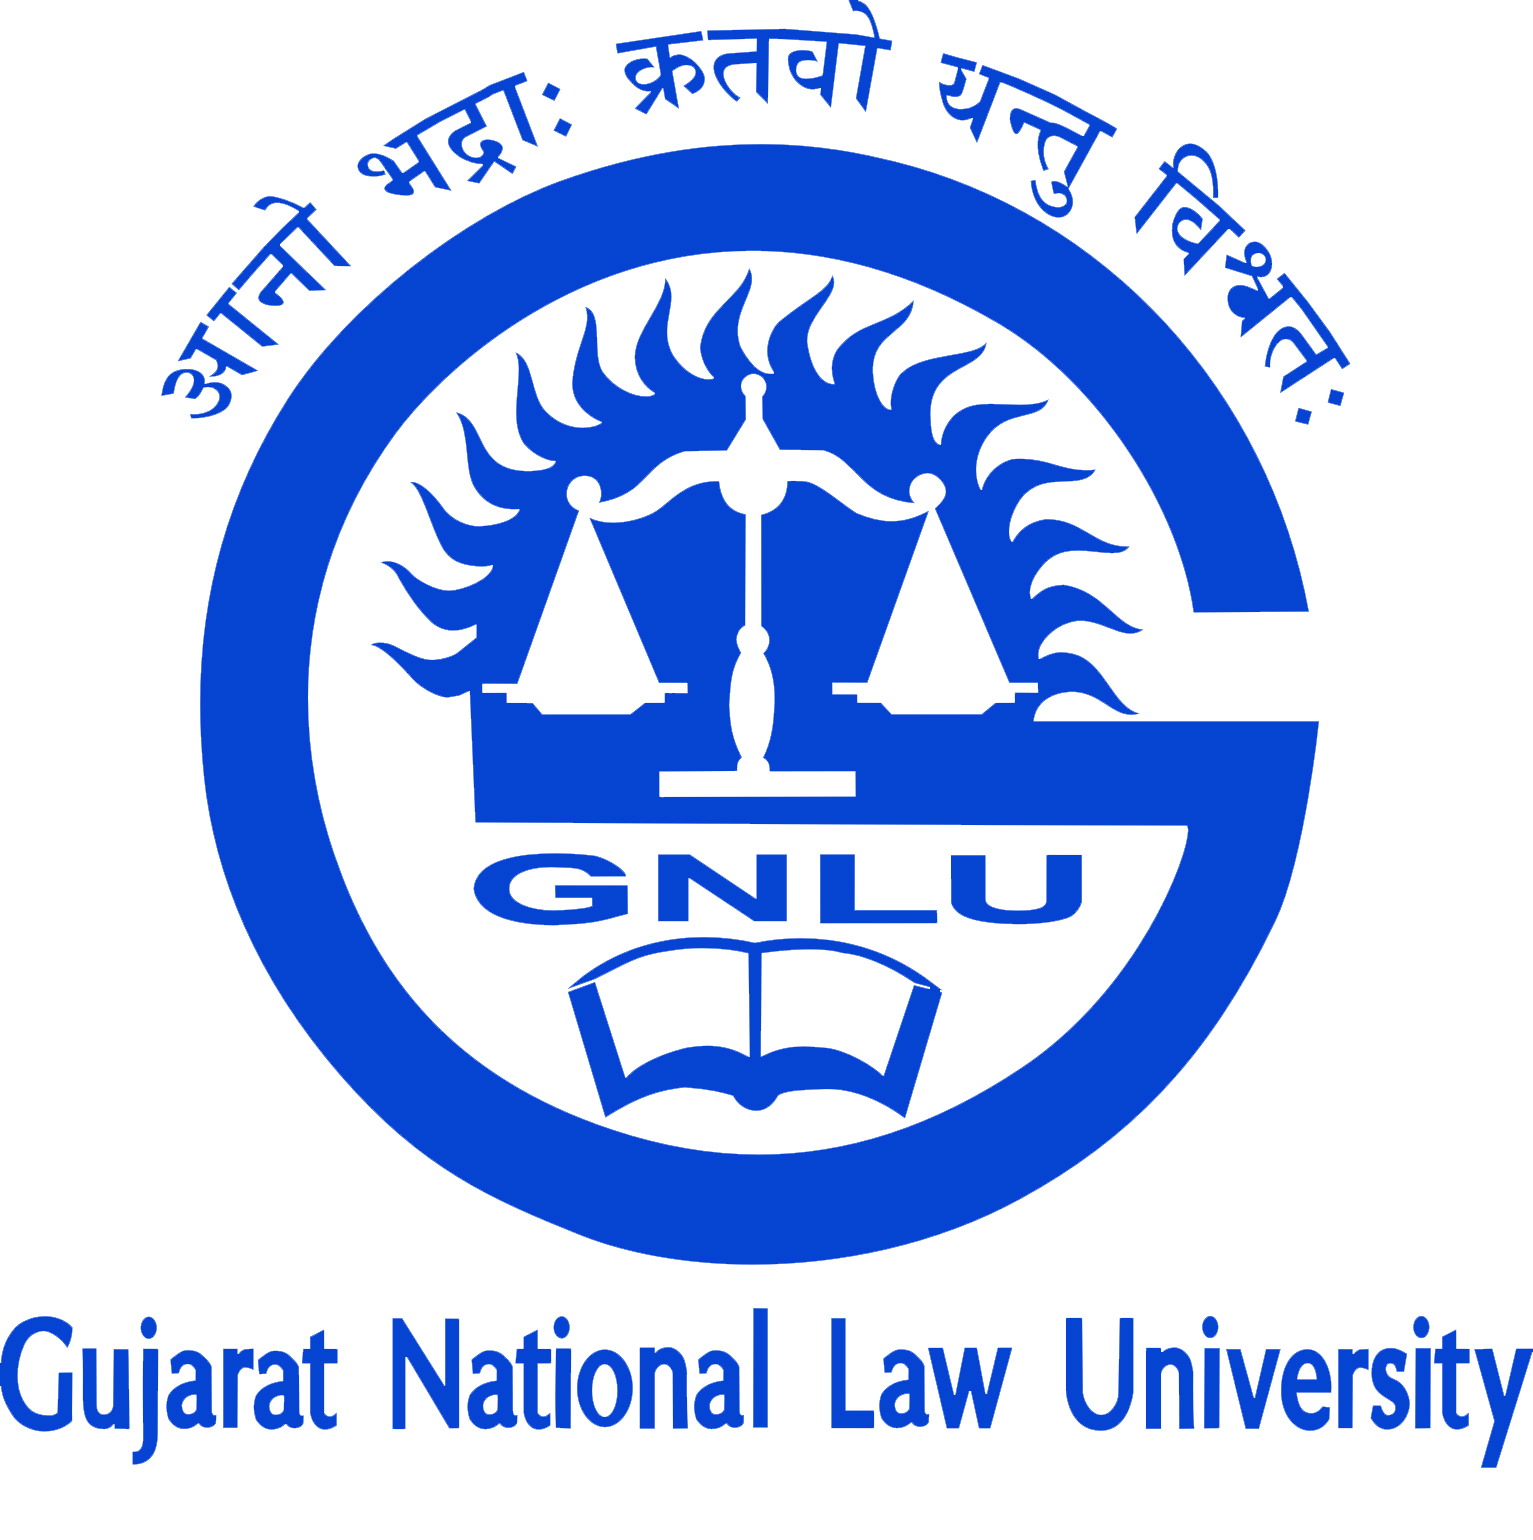 GNLU Annual Legal Services Forum 2019